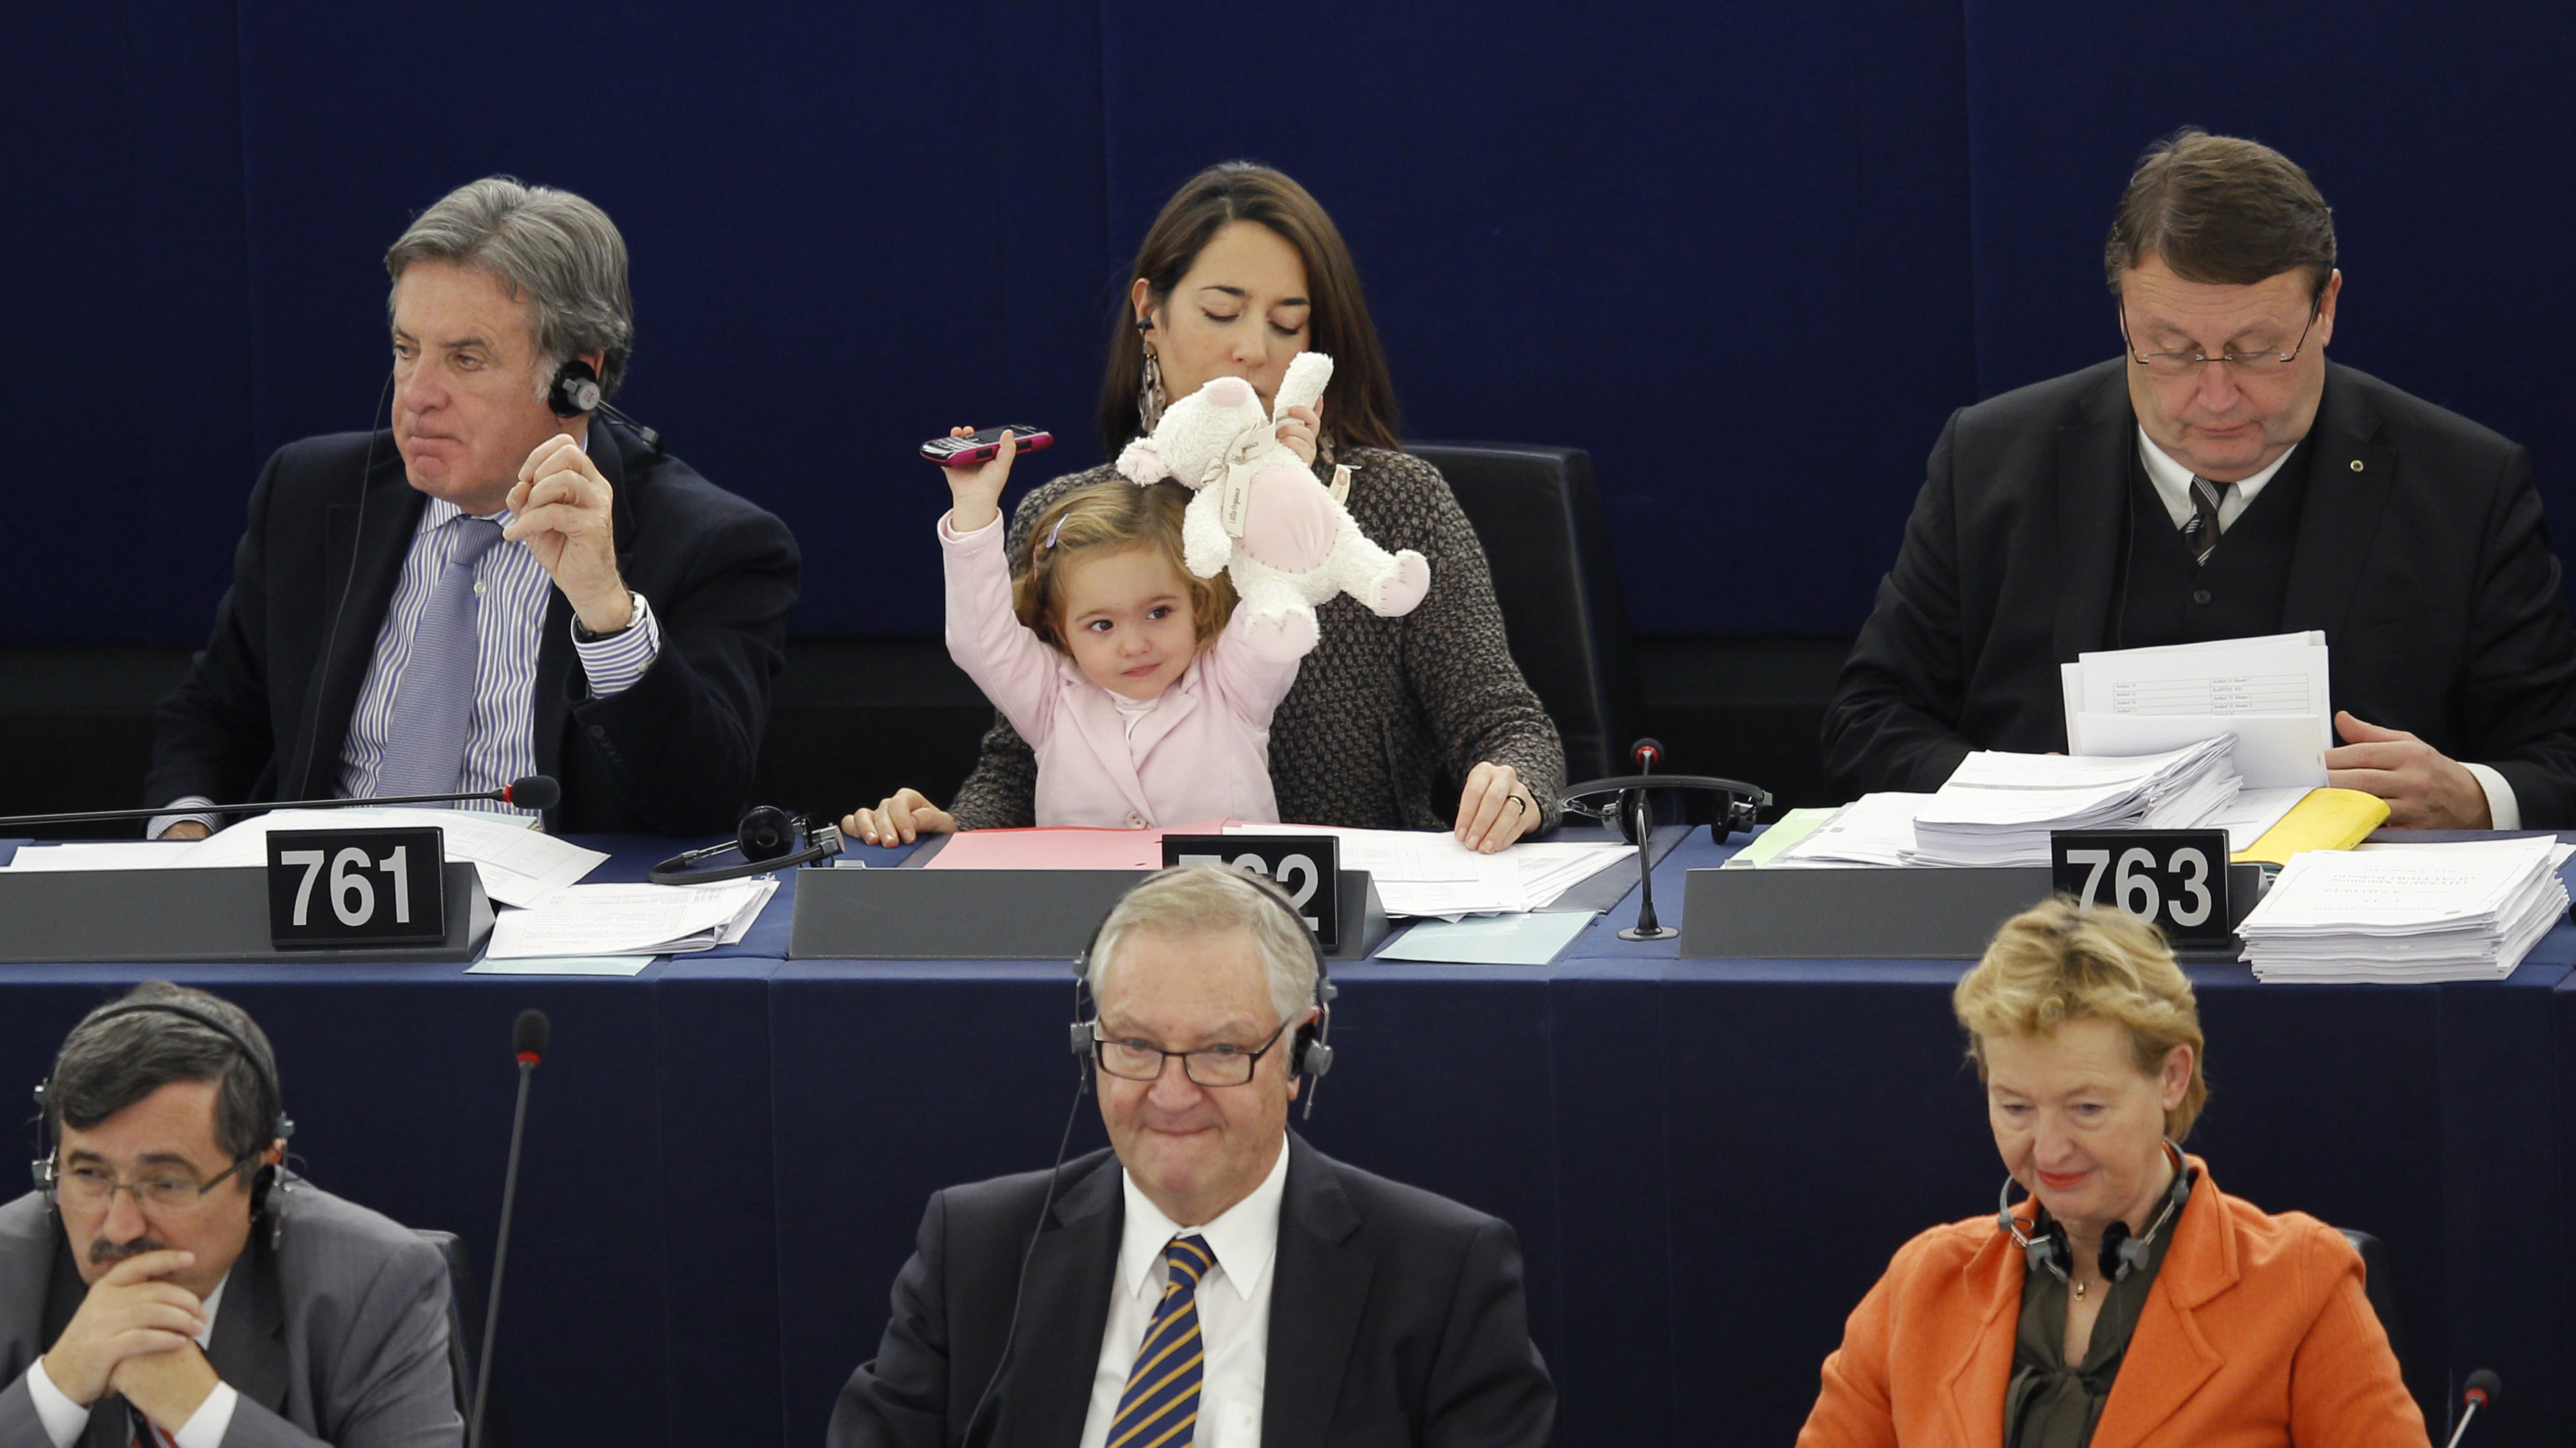 Member of the European Parliament Ronzulli of Italy takes part with her daughter Vittoria in a voting...